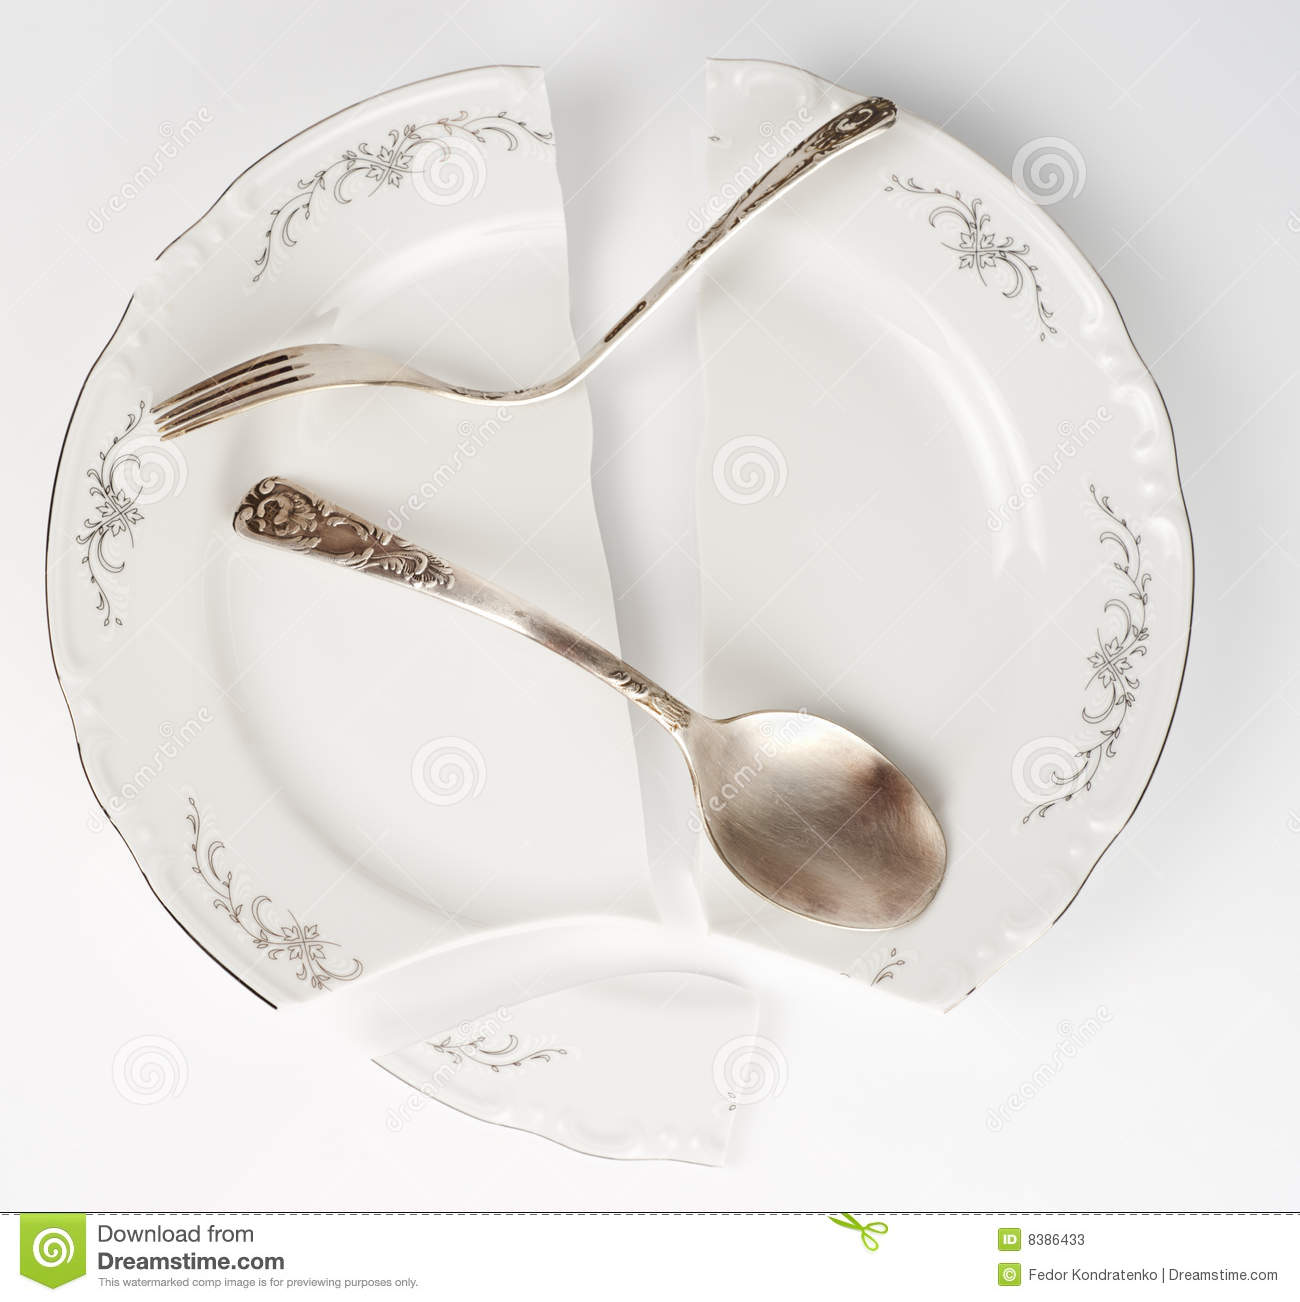 Broken China Plate And Bent Silverware Stock Photos - Image: 8386433